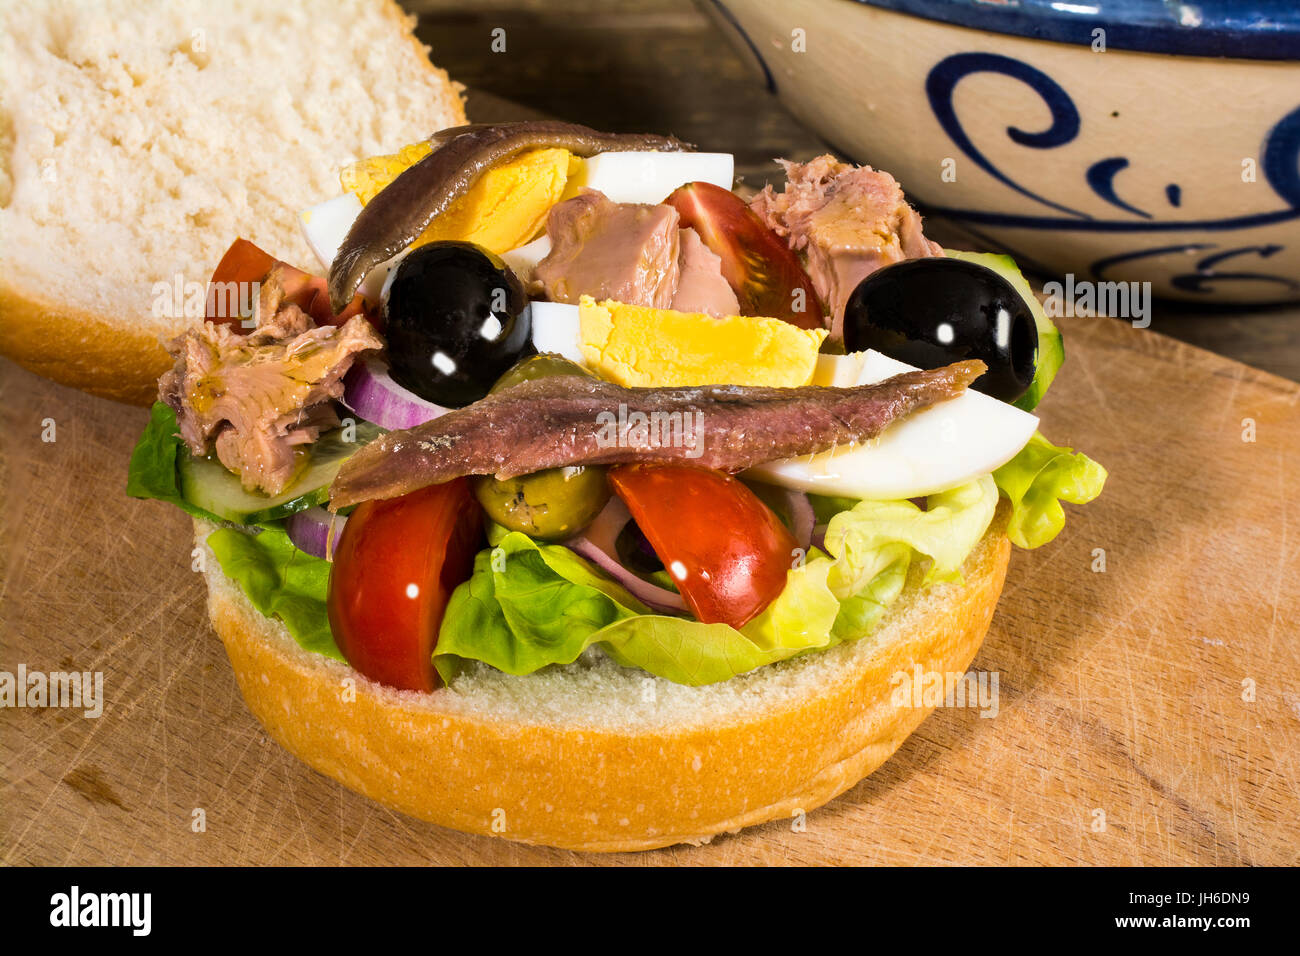 Genuine Pan Bagnat, traditional salad sandwich from Nice Cote d'Azur, France: lettuce, tomato,onion, cucumber, - Stock Image